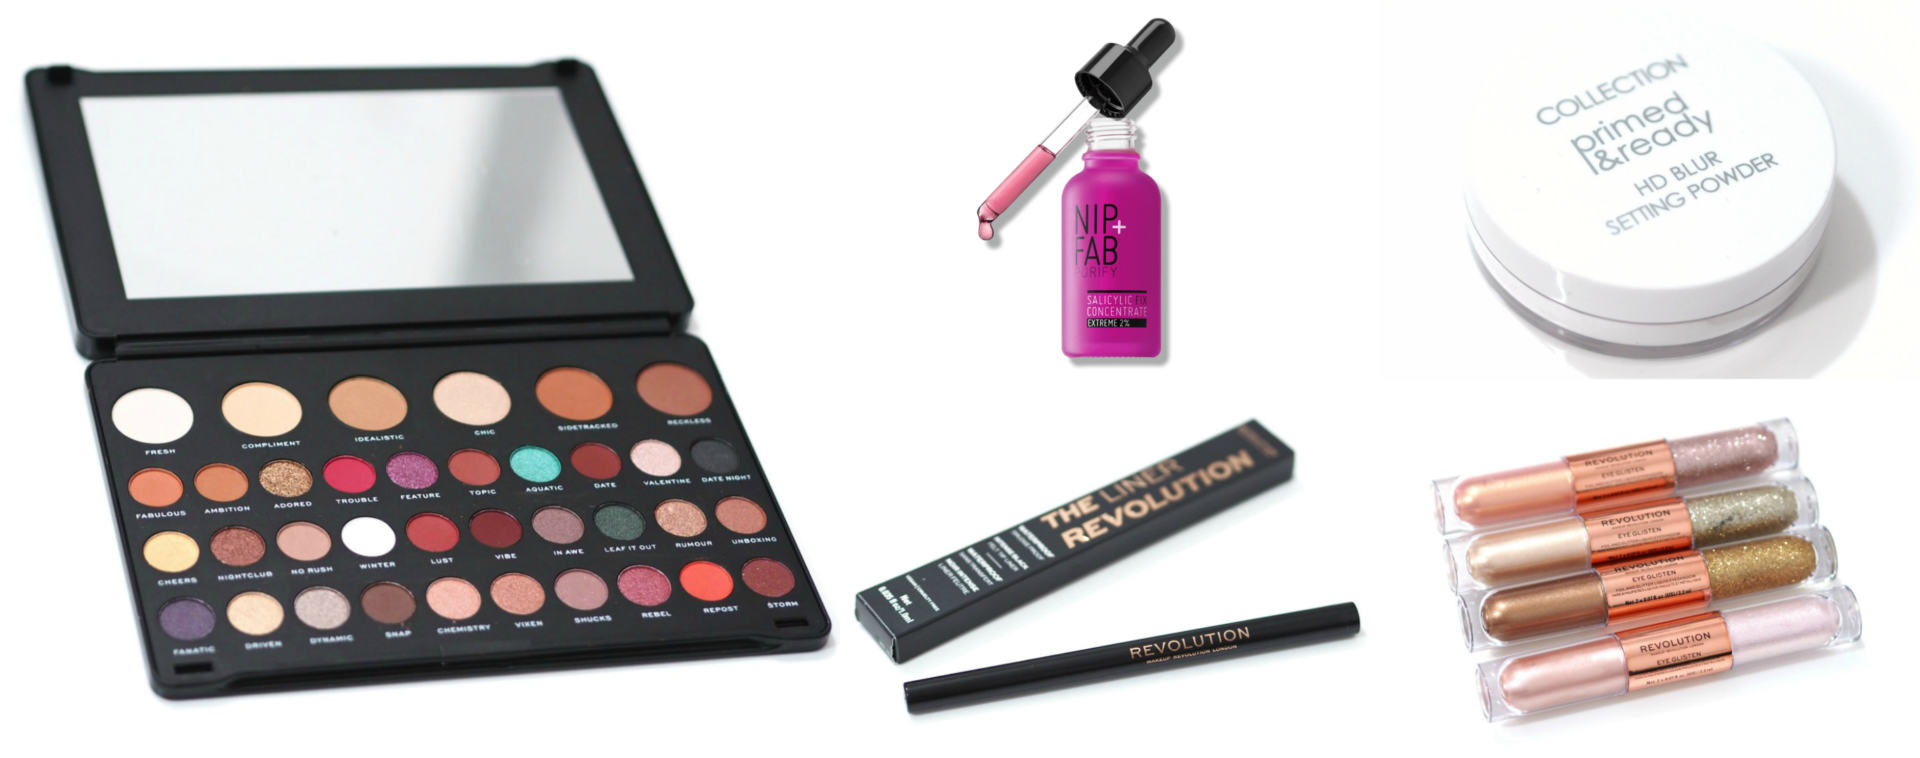 My 2019 Beauty Favourites and Fails 2